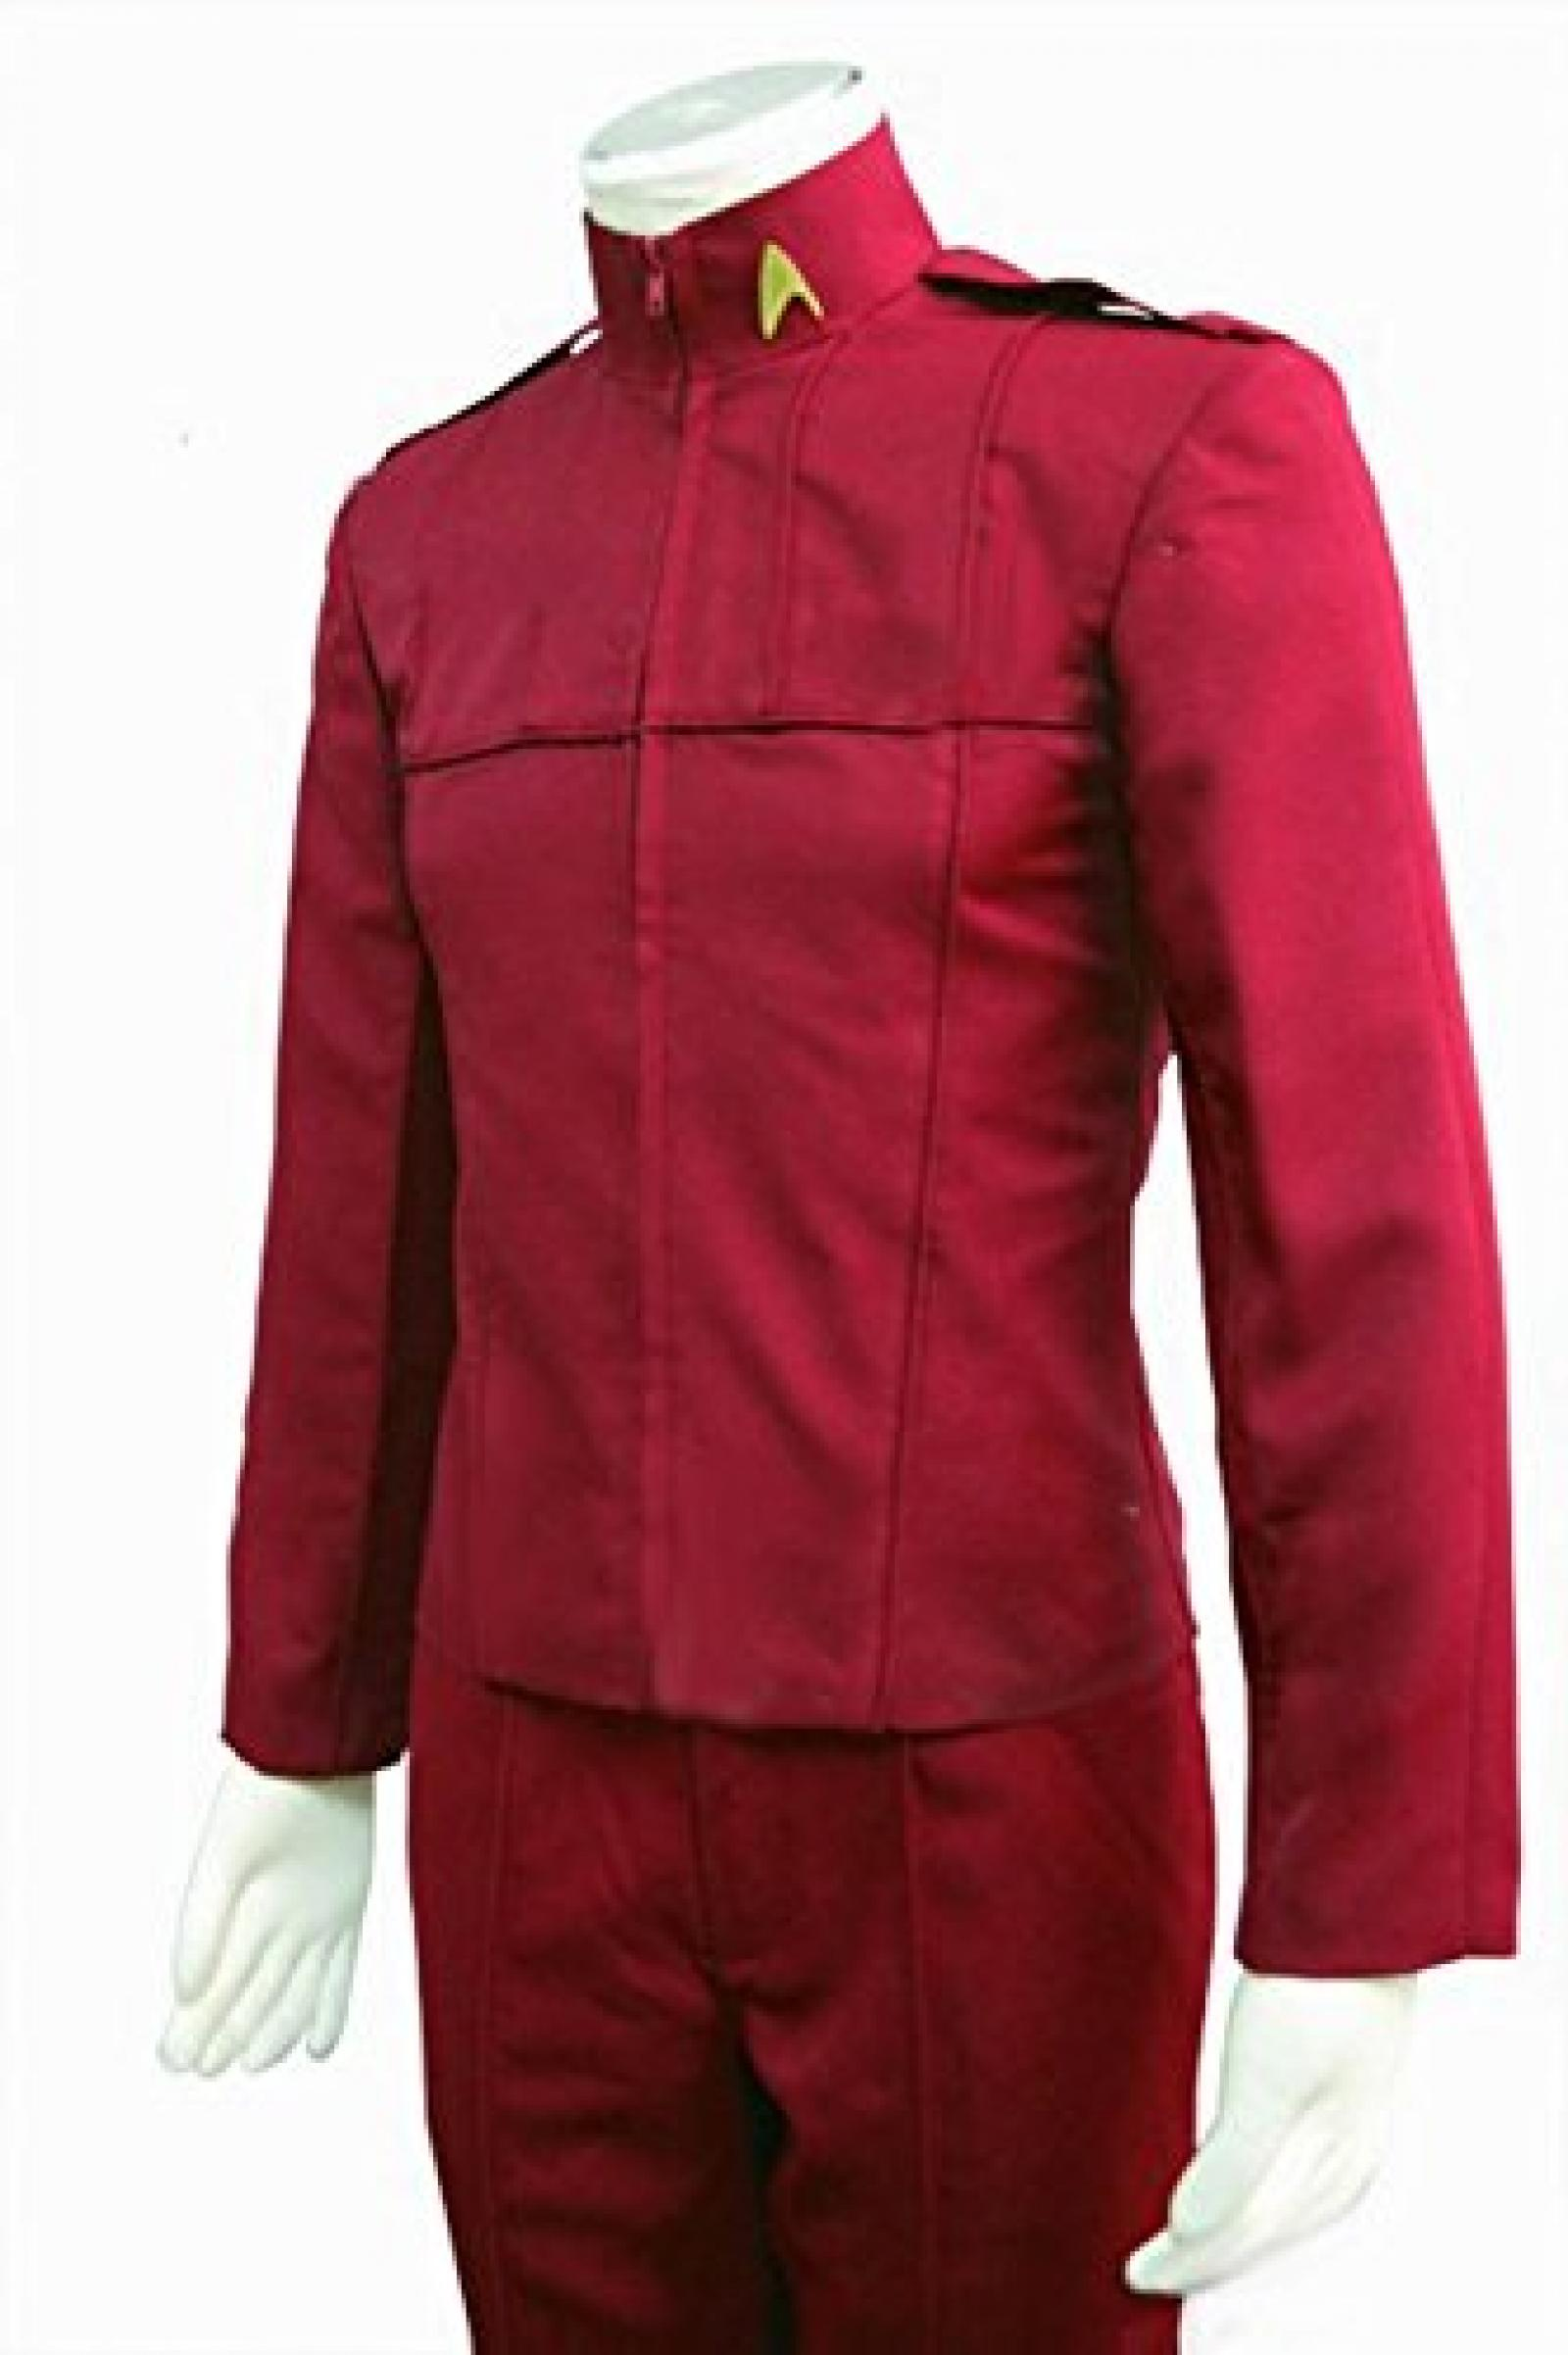 Star Trek 2009 Movie Cadet Uniform Jacke Pants Cosplay Kostuem